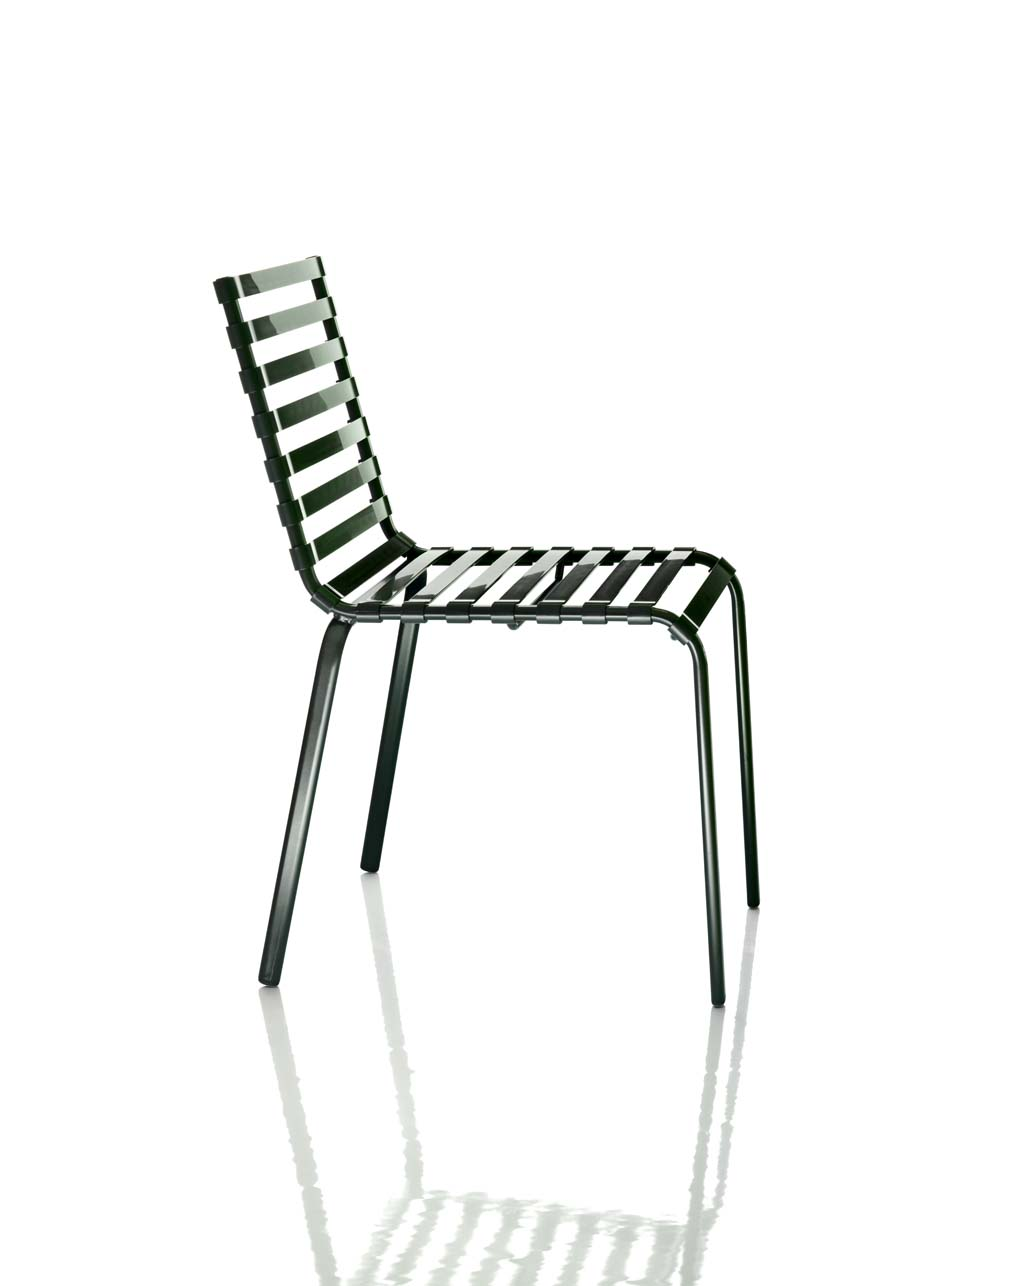 erwan bouroullec and ronan bouroullec striped sedia. Black Bedroom Furniture Sets. Home Design Ideas